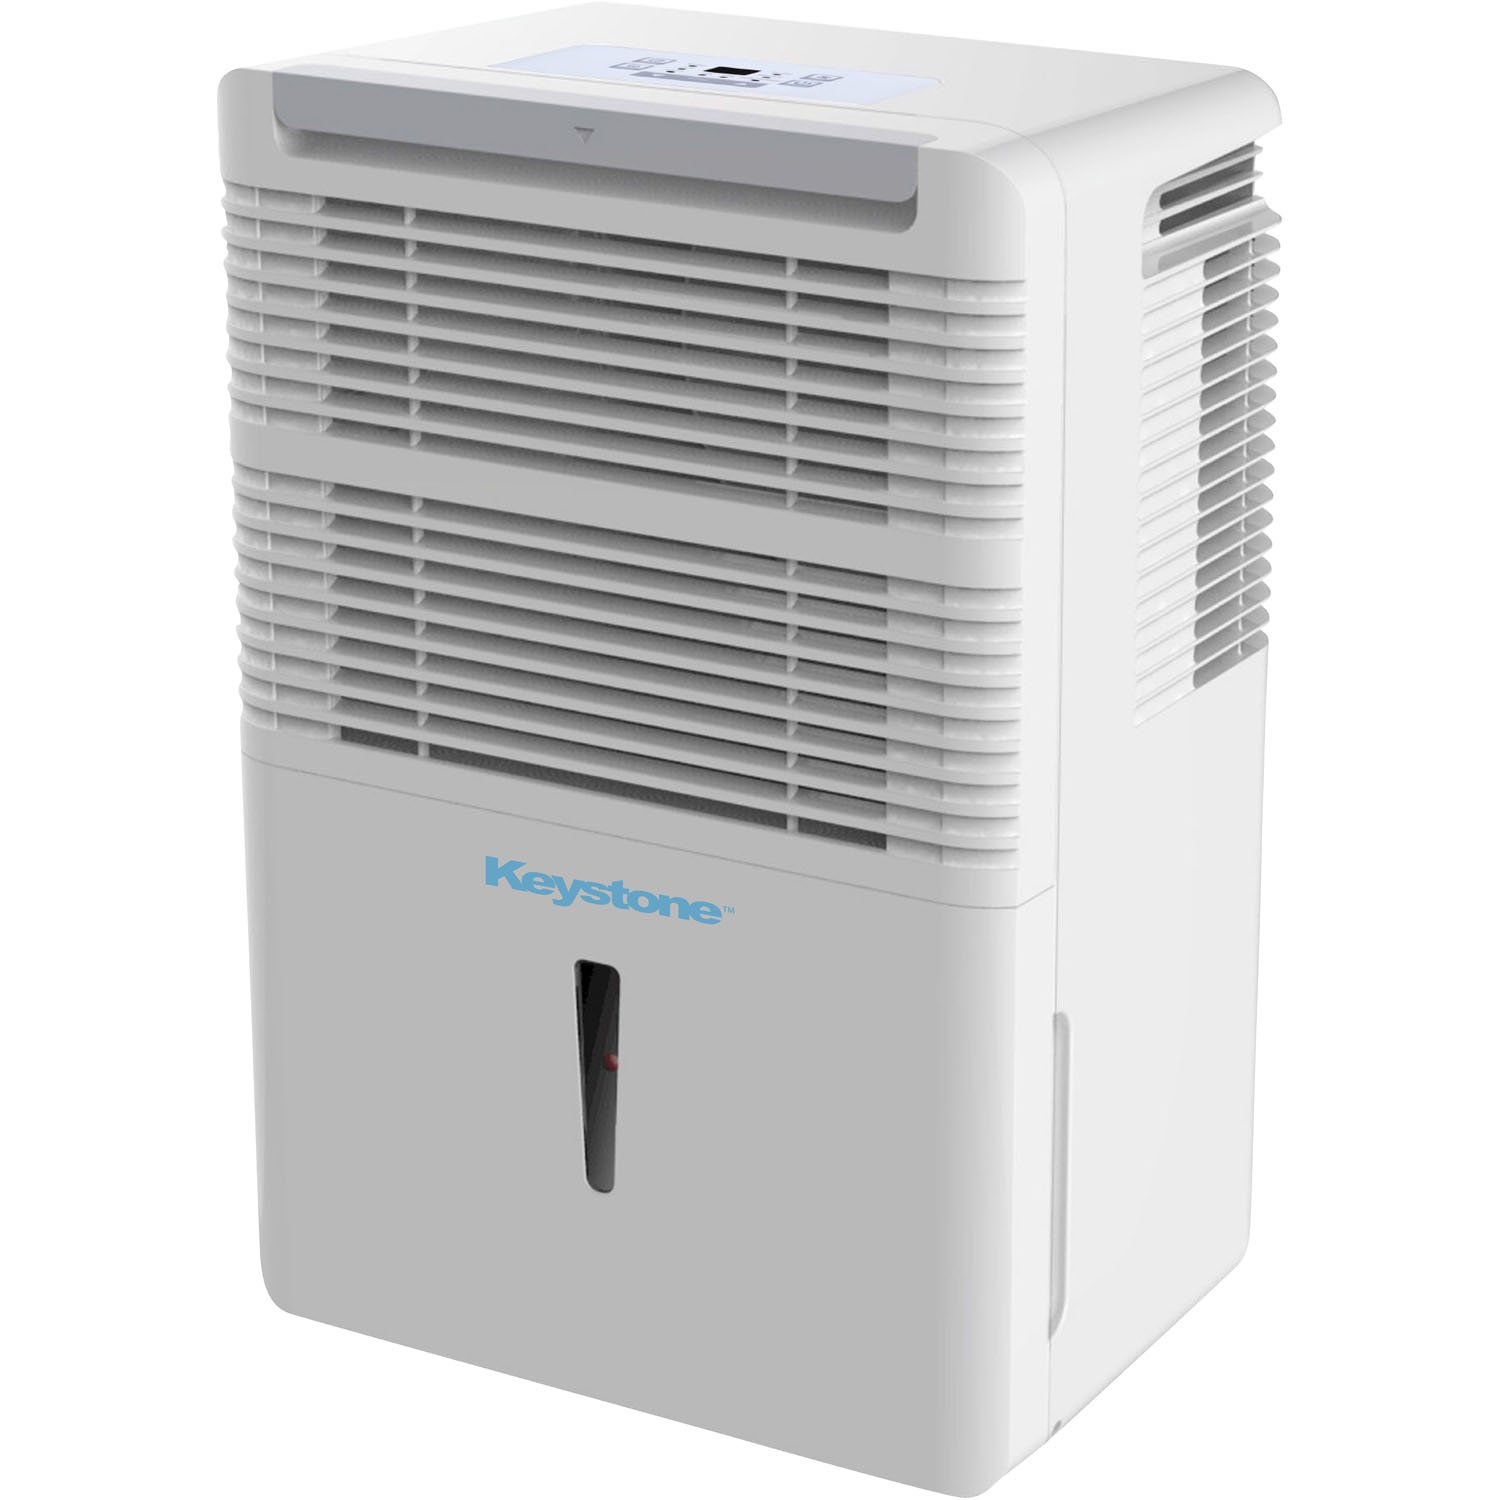 Keystone KSTAD50B 50 Pint Dehumidifier Review